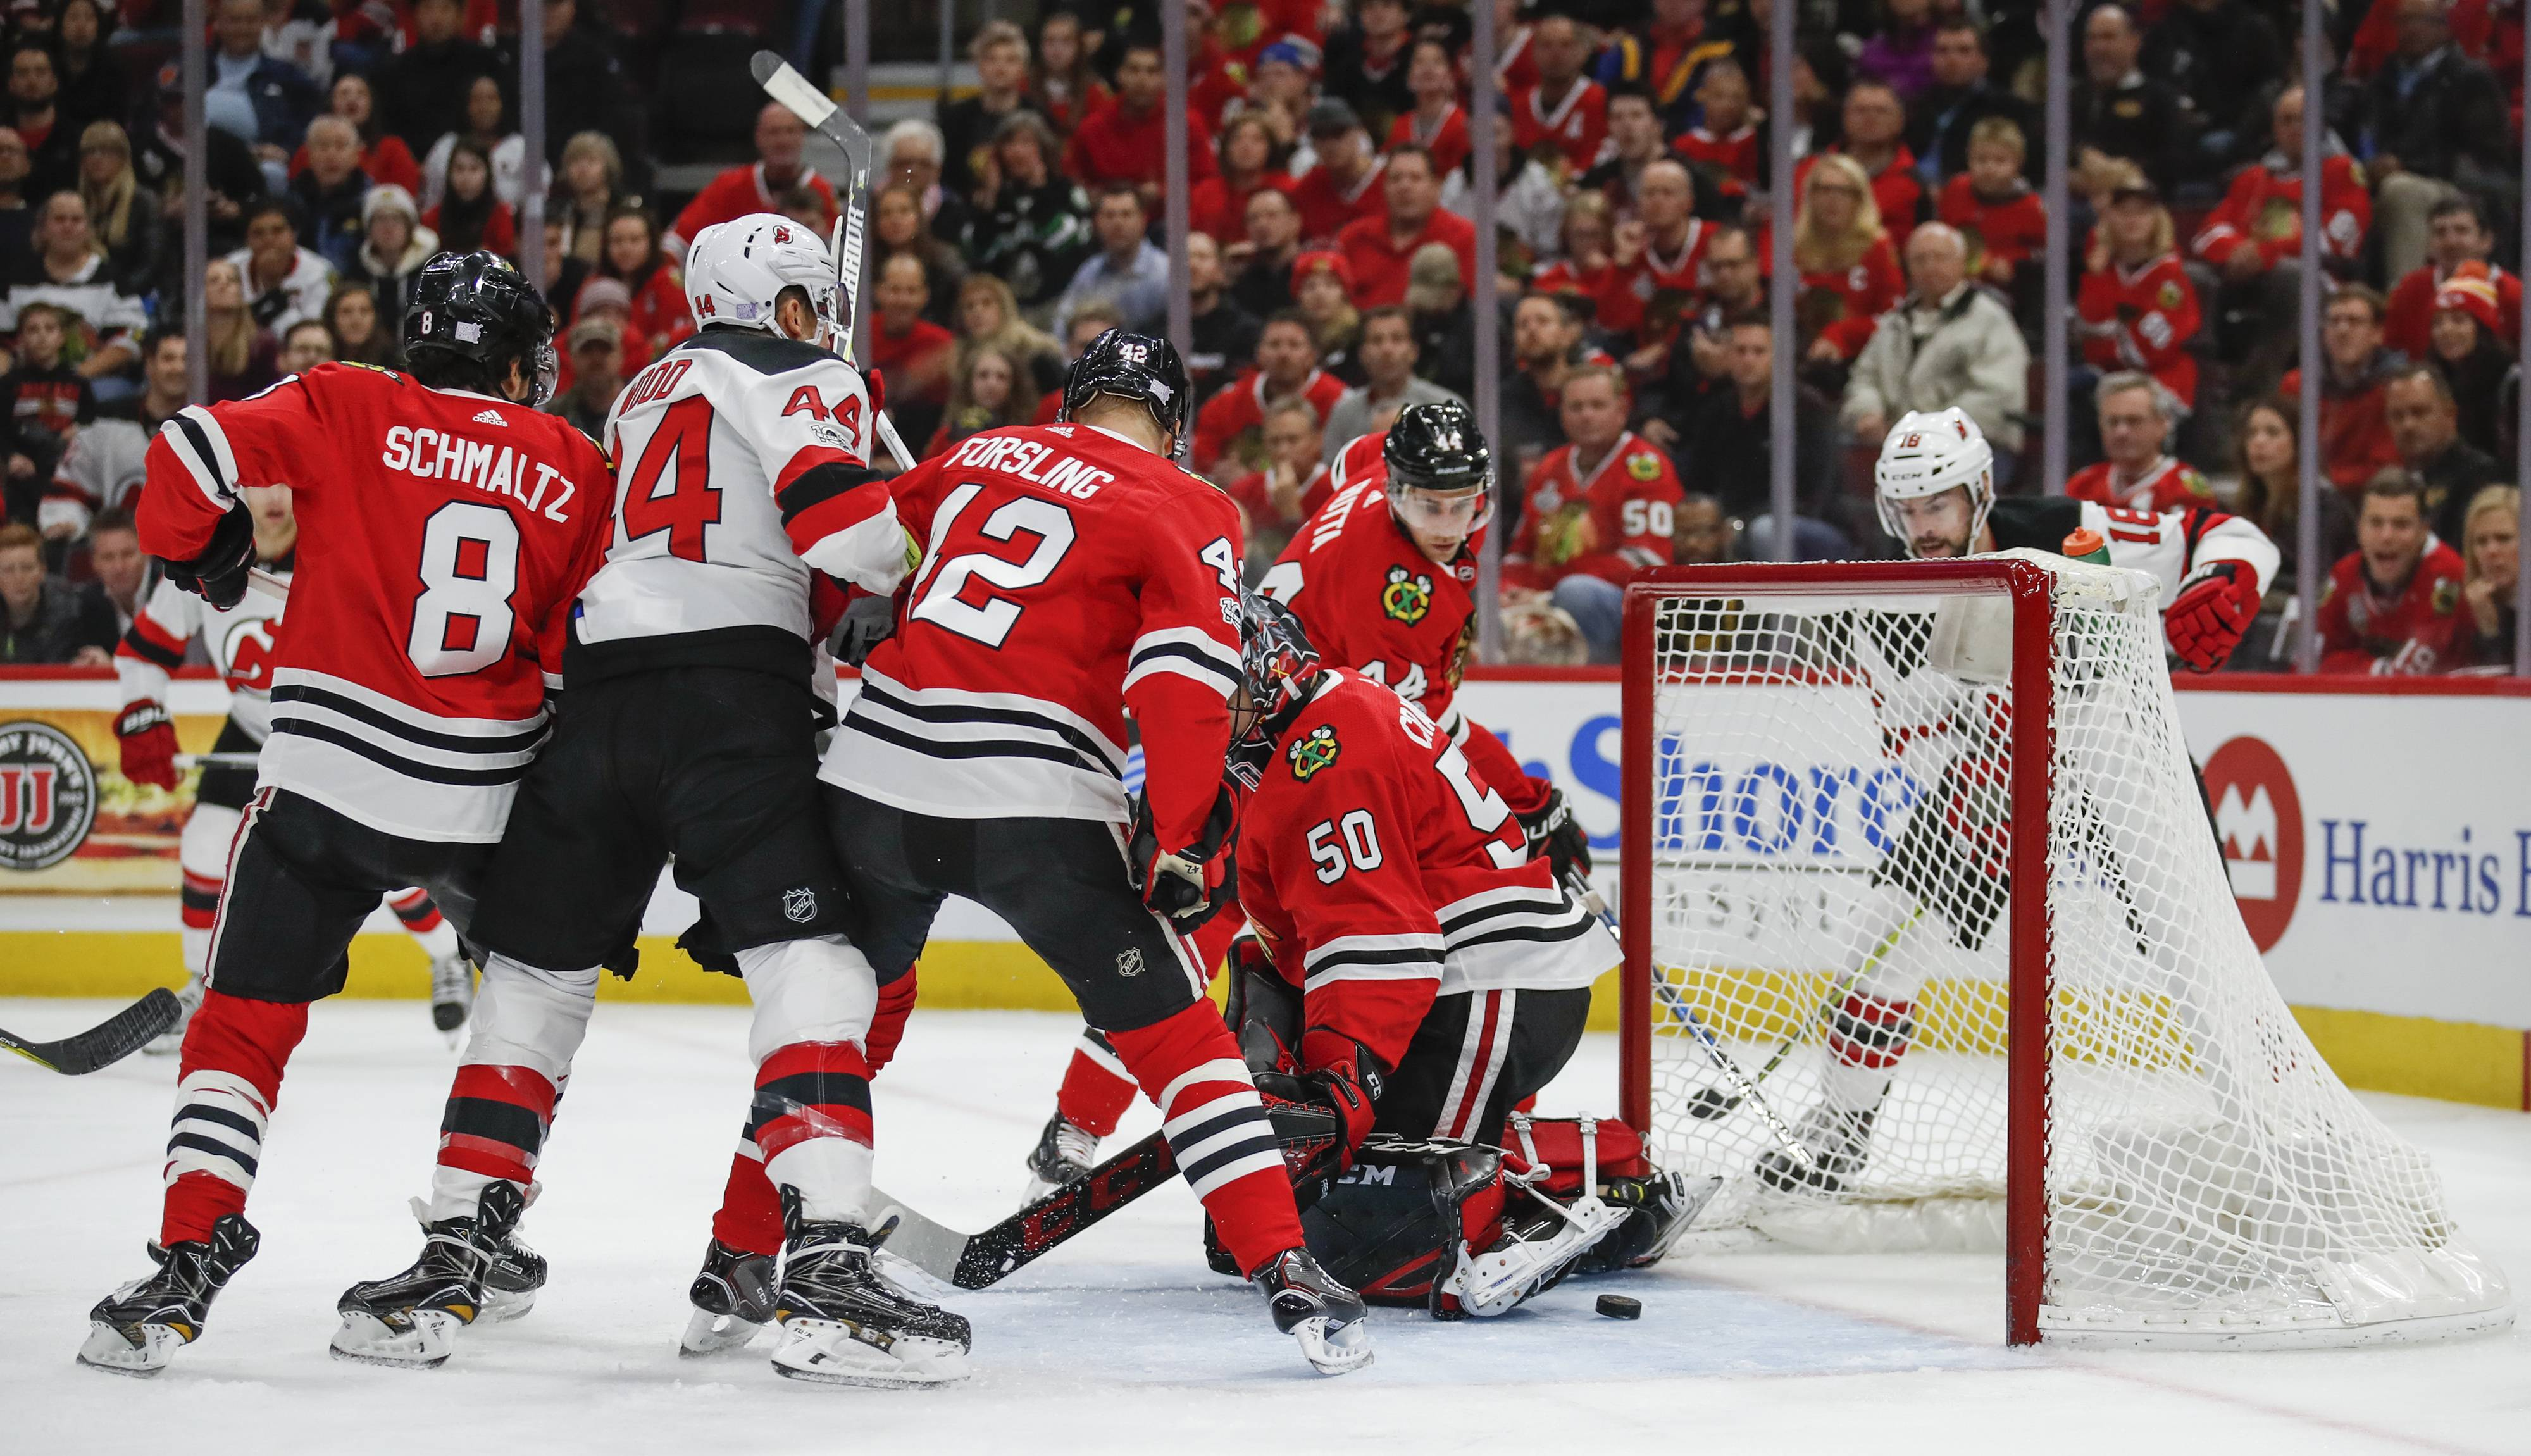 New Jersey Devils left wing Miles Wood scores against Chicago Blackhawks goalie Corey Crawford during the first period Sunday in Chicago.